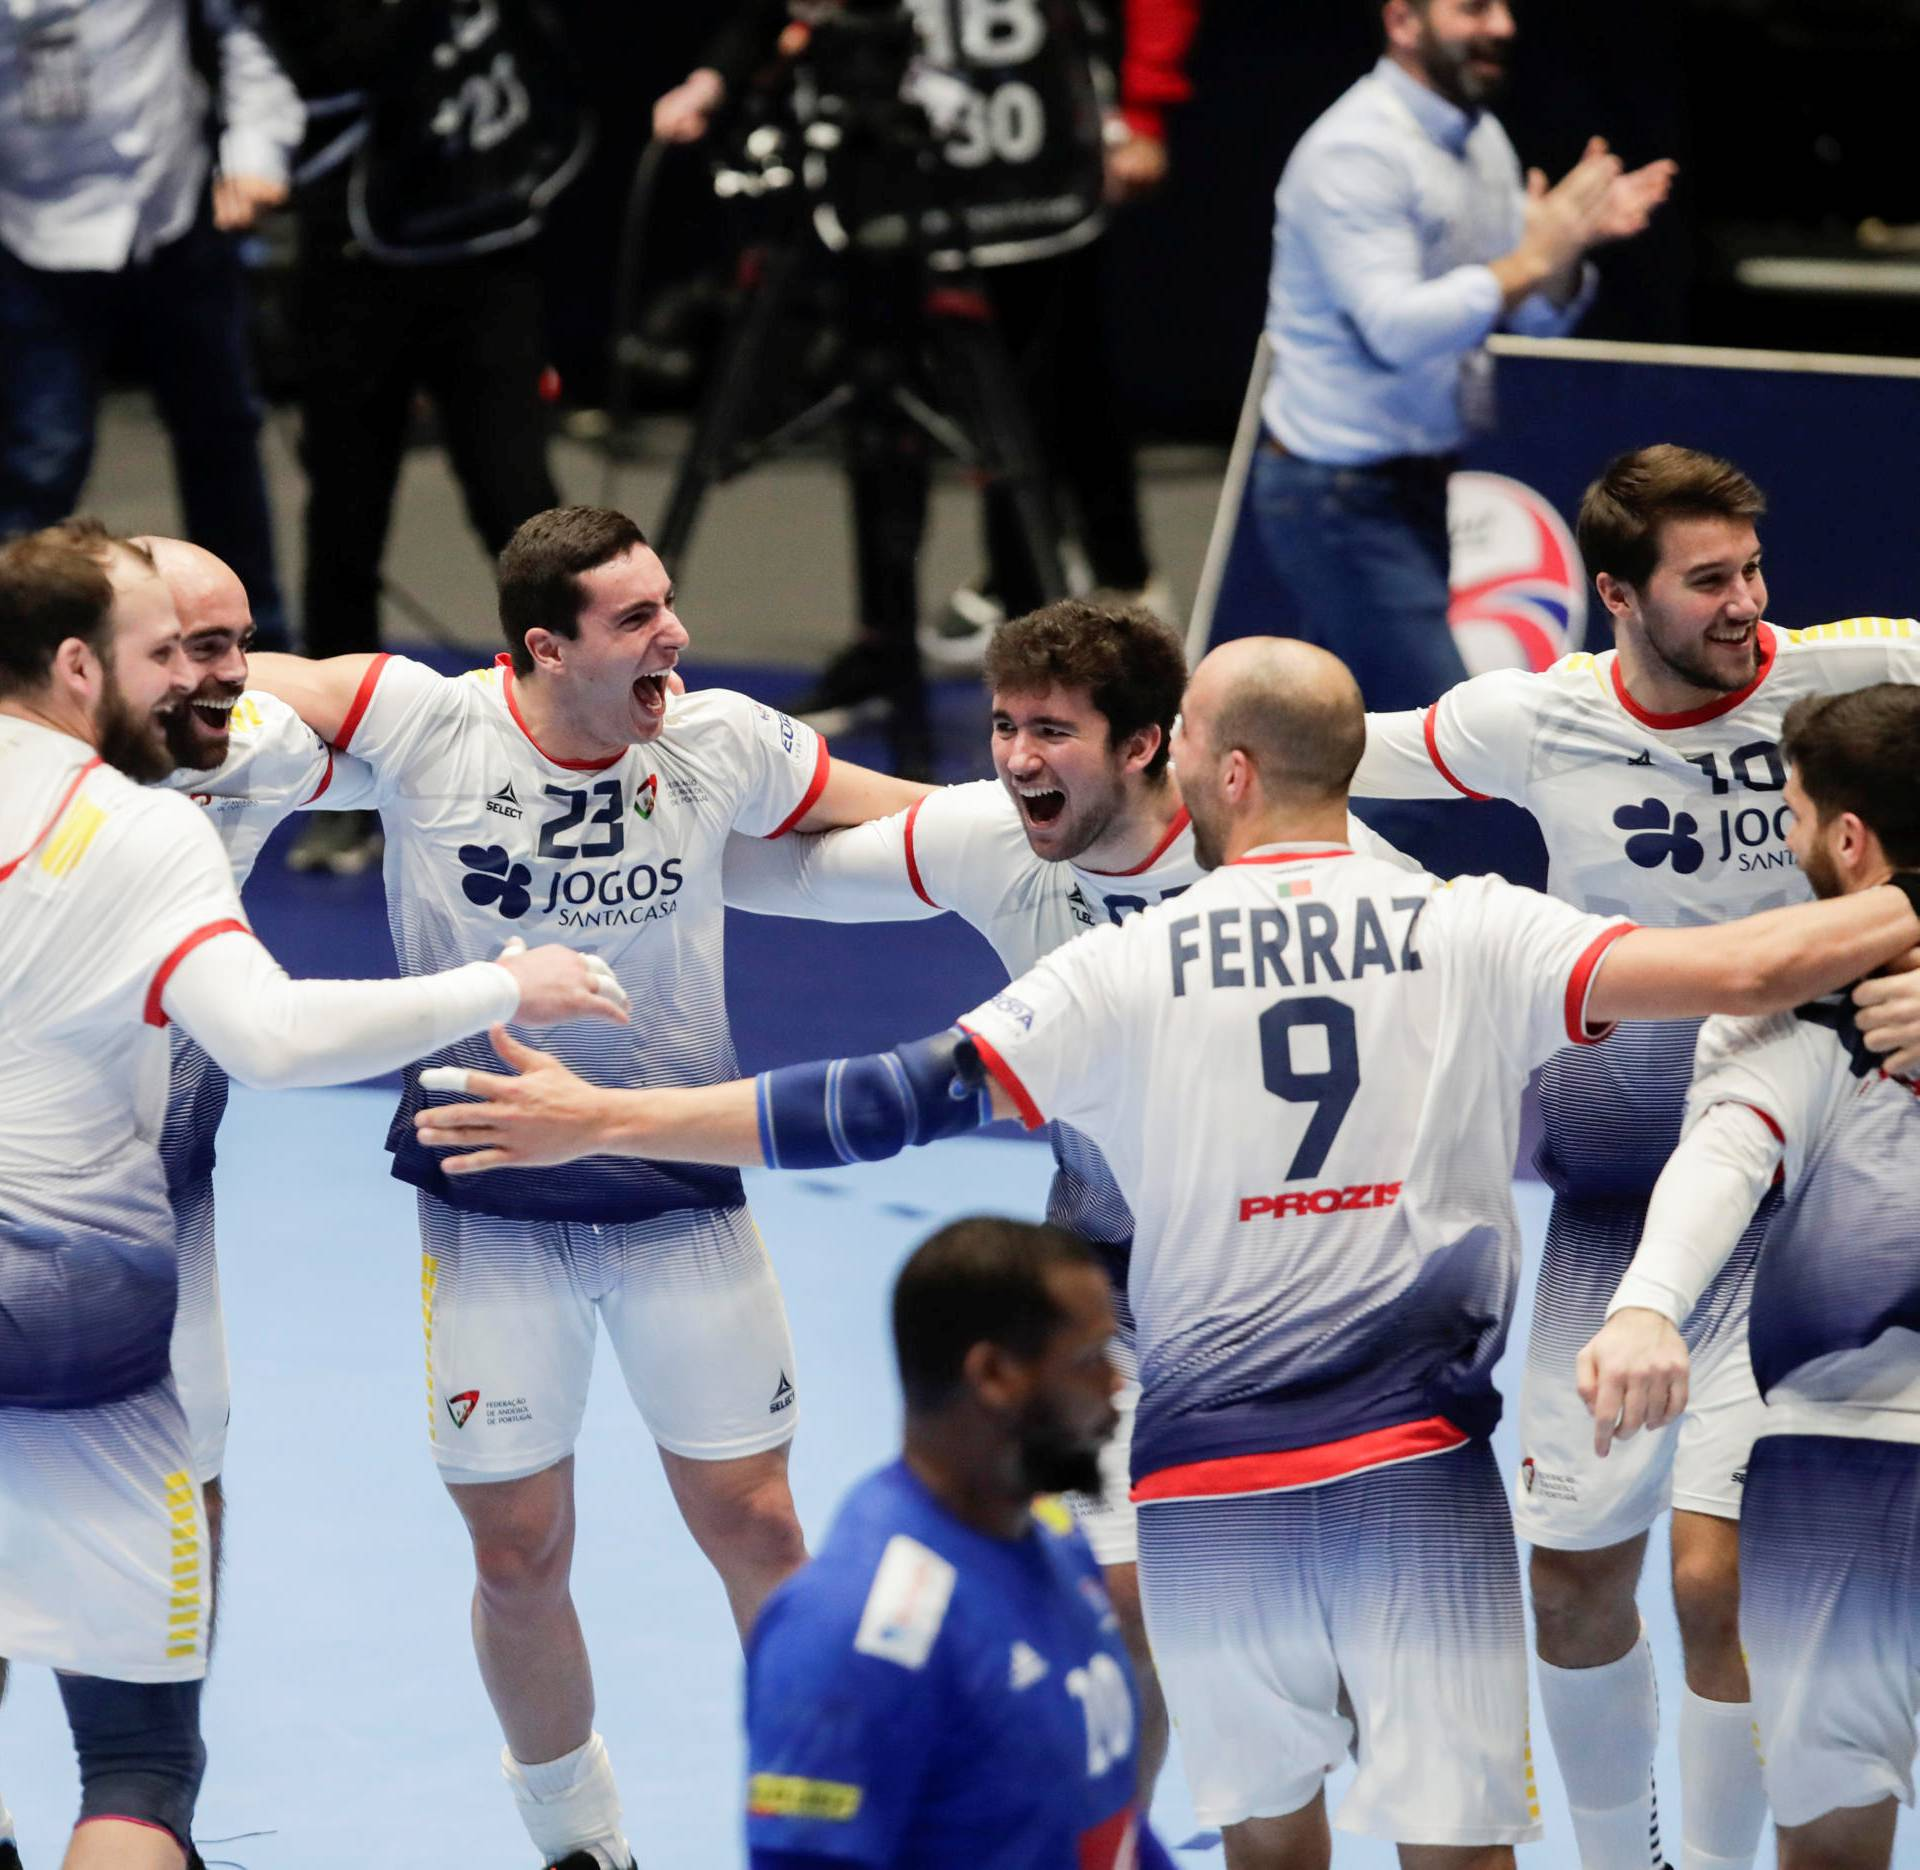 2020 Men's EHF European Handball Championship